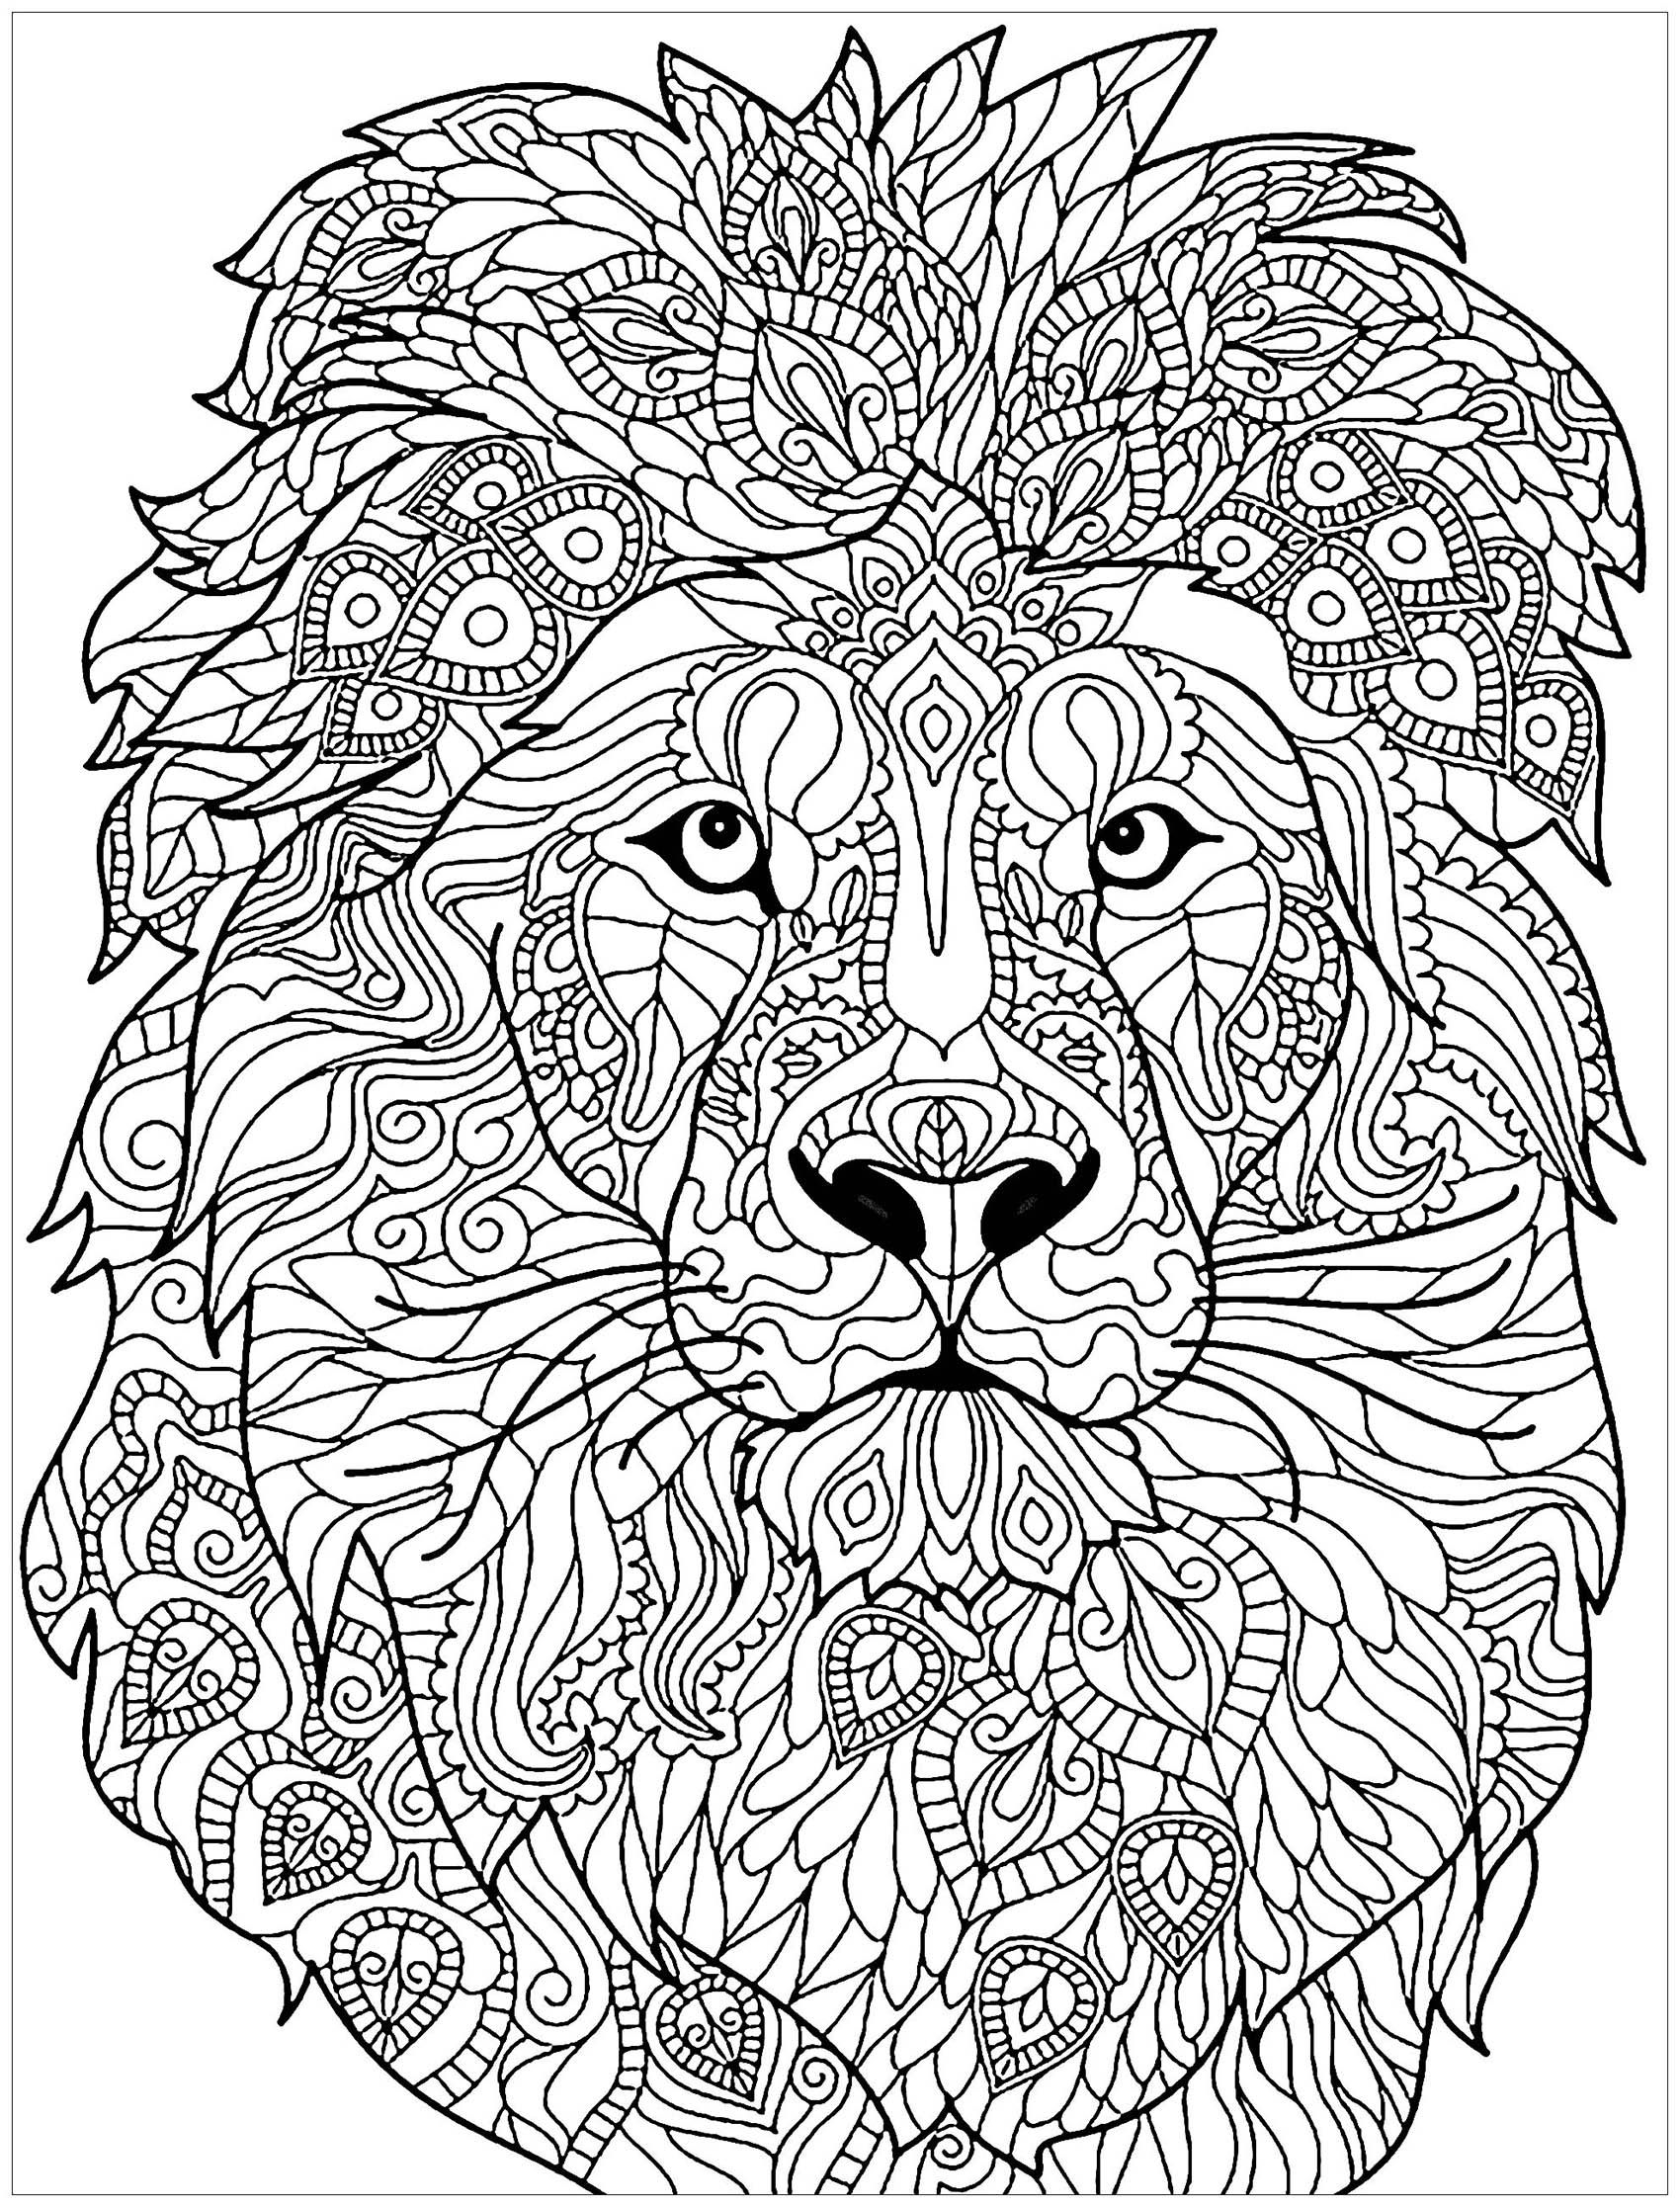 Beautiful Lion Coloring Page From The Gallery Lion Lion Coloring Pages Animal Coloring Books Mandala Coloring Pages